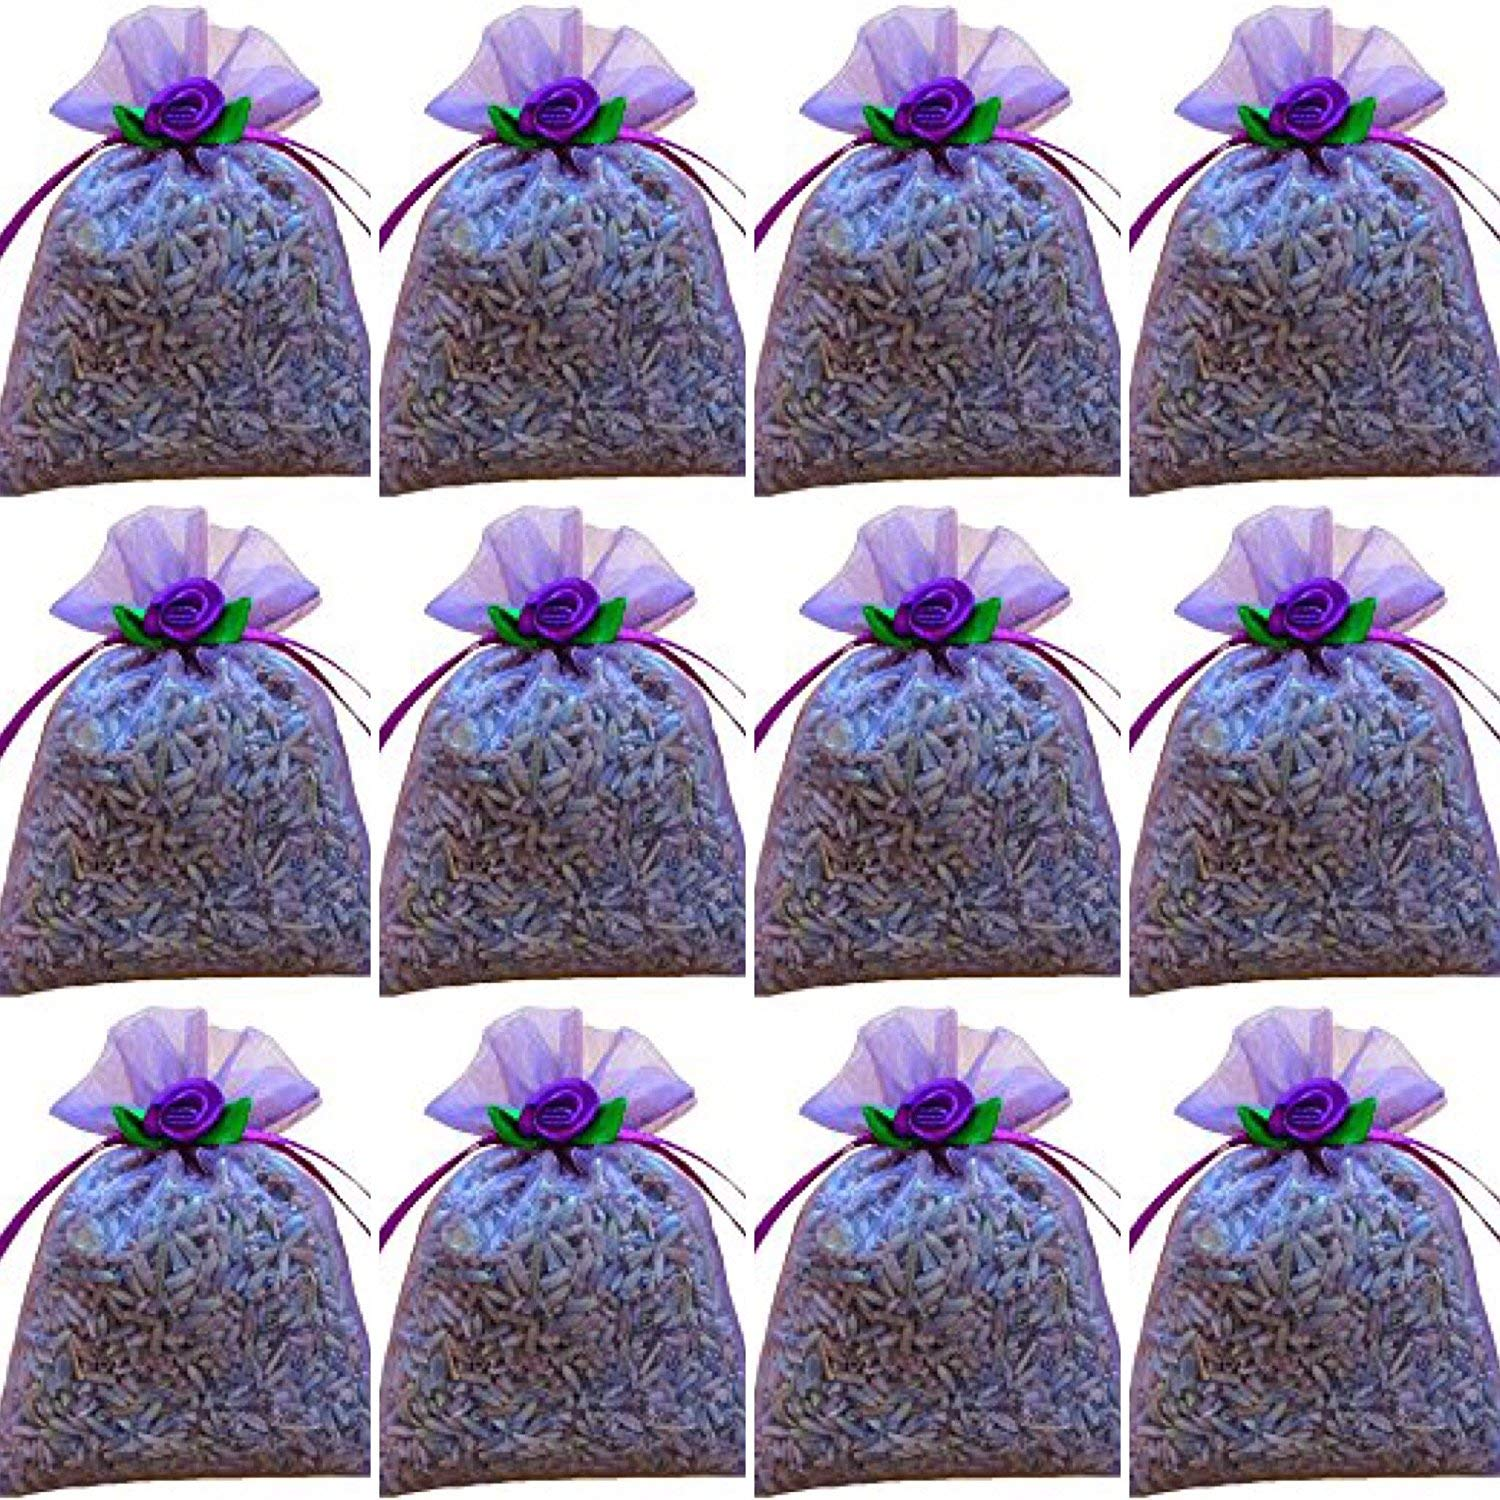 100 Lavender Filled Sachets - Perfect for Special Events - Handmade by Zziggysgal (Lavender with Satin Rosettes) by zziggysgal (Image #1)